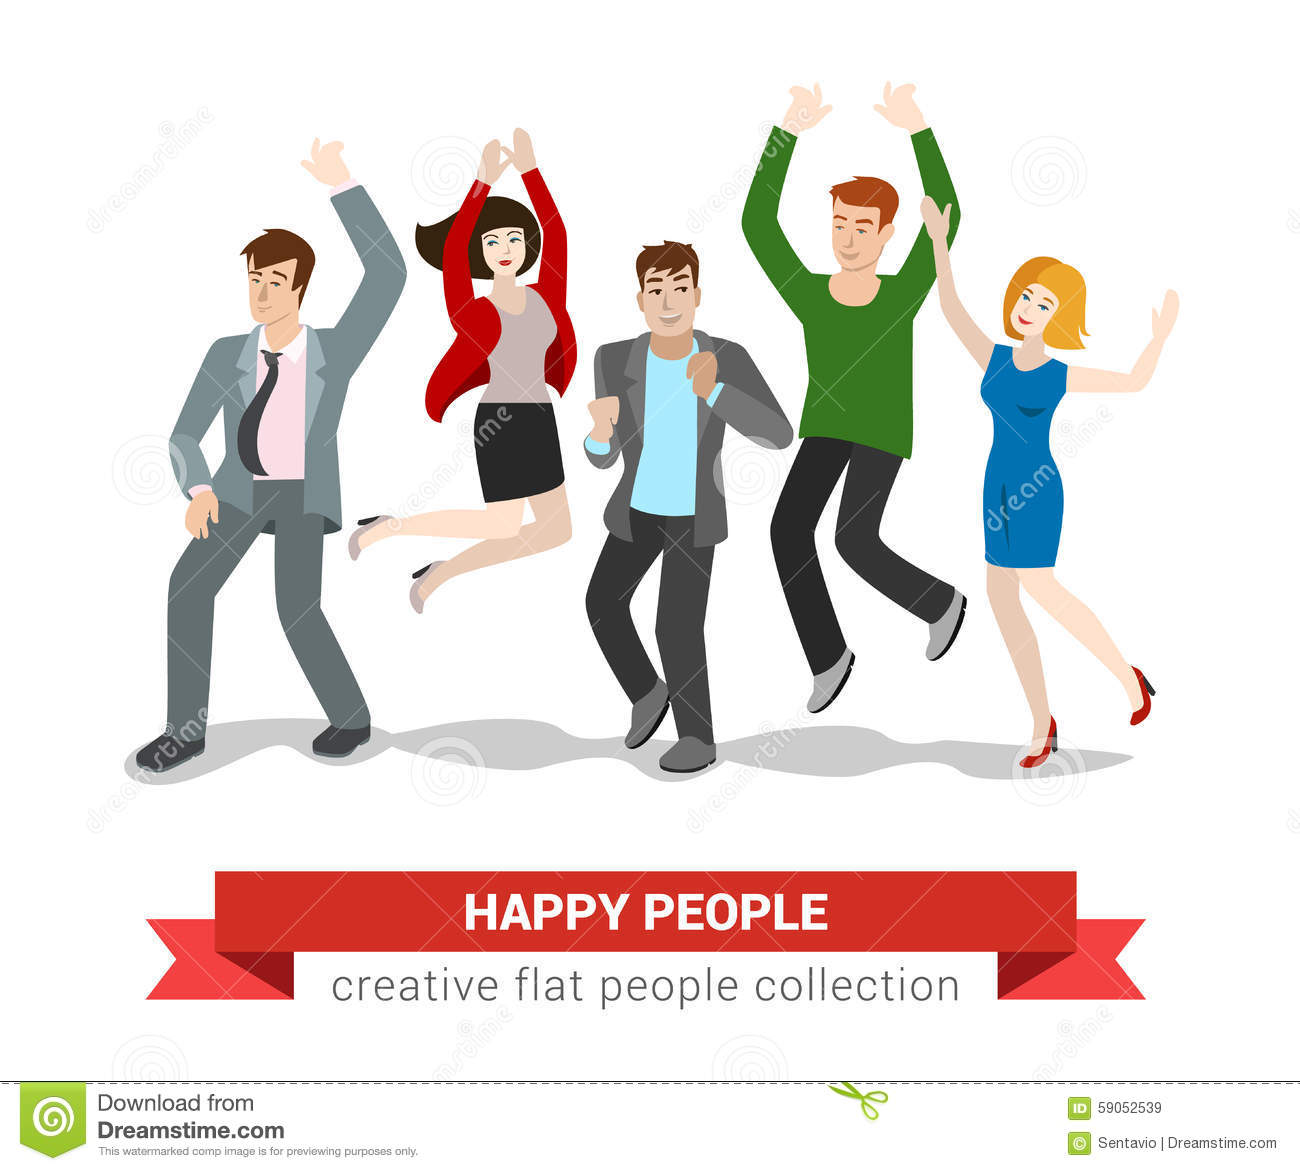 happy-jumping-people-friends-group-vector-flat-smiling-high-young-style-creative-collection-59052539.jpg